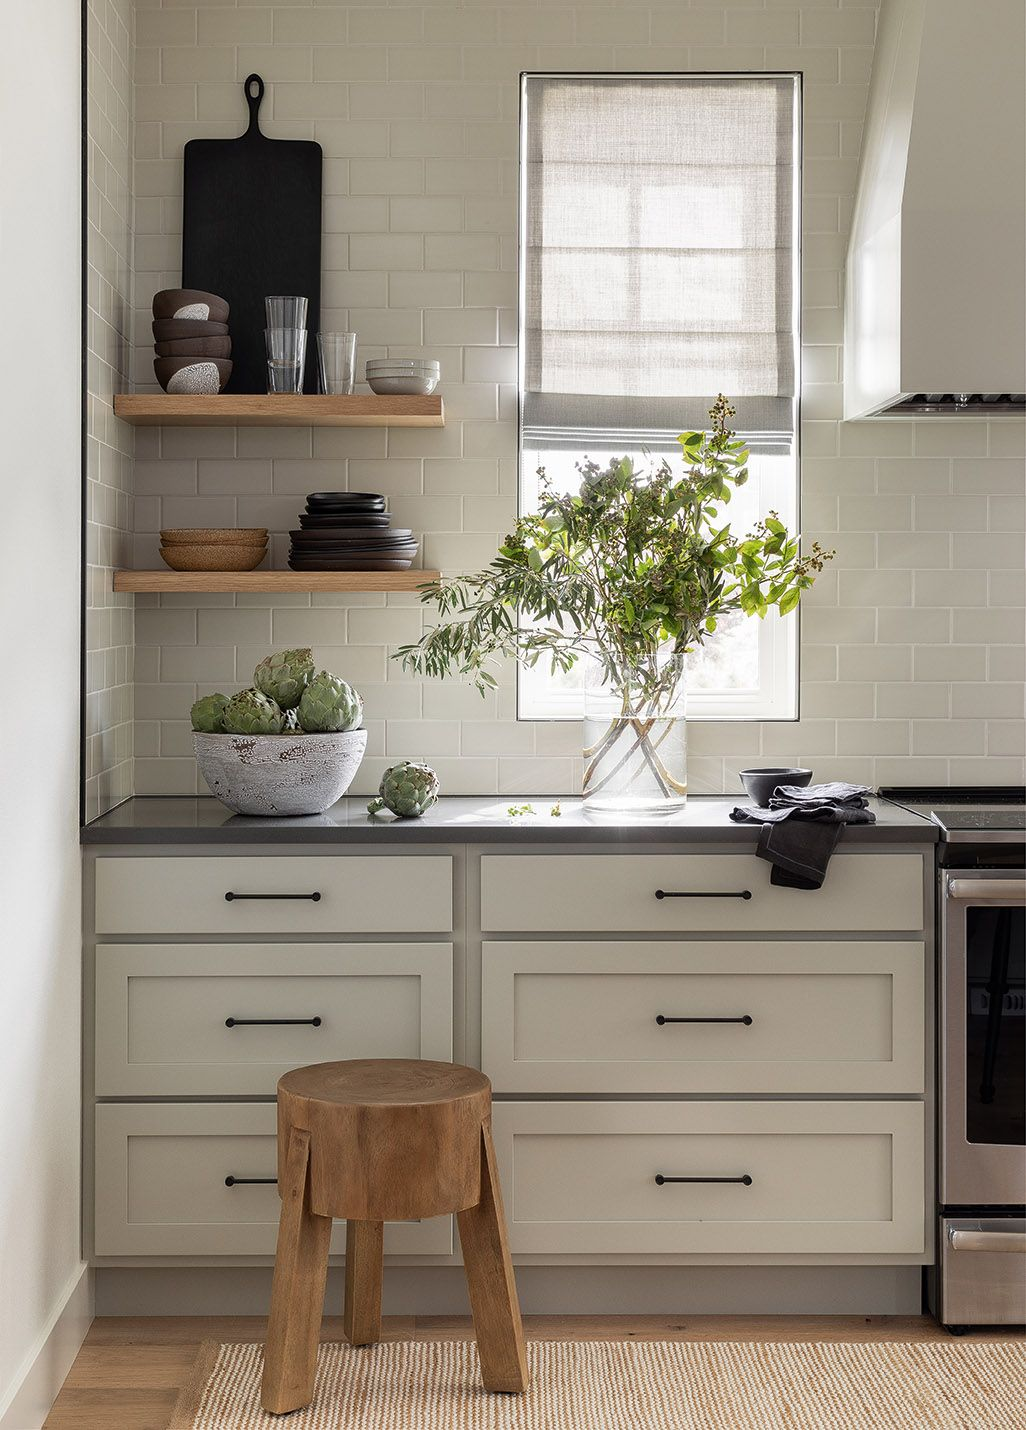 Rustic wood stool and floating shelves in a beautiful kitchen with design by Brian Paquette. #kitchendesign #floatingshelves